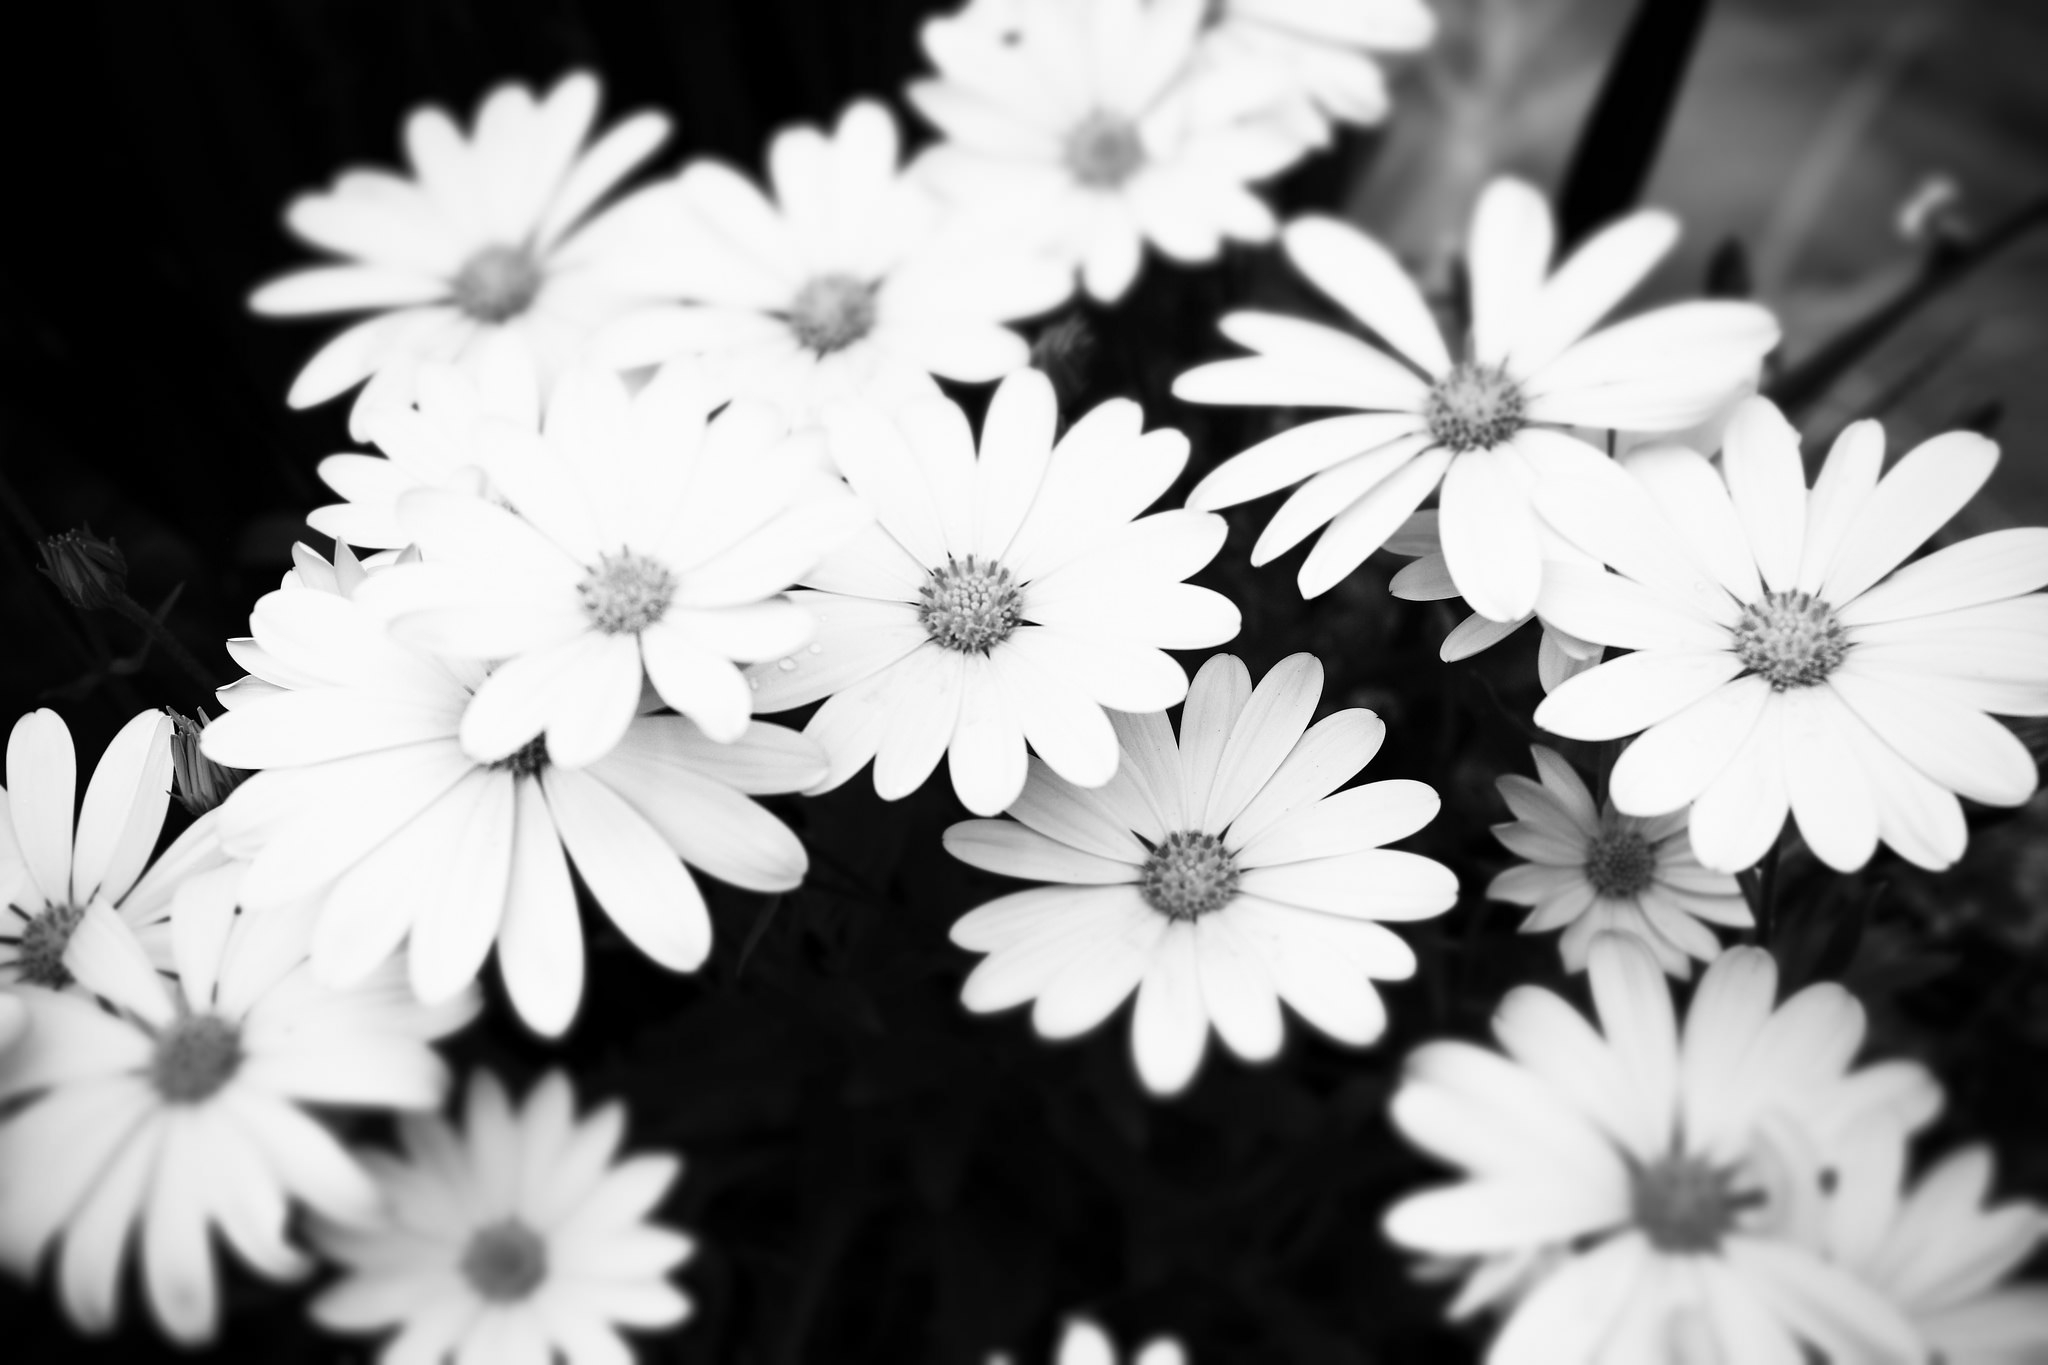 High Res Black andWhite Floral wallpaper